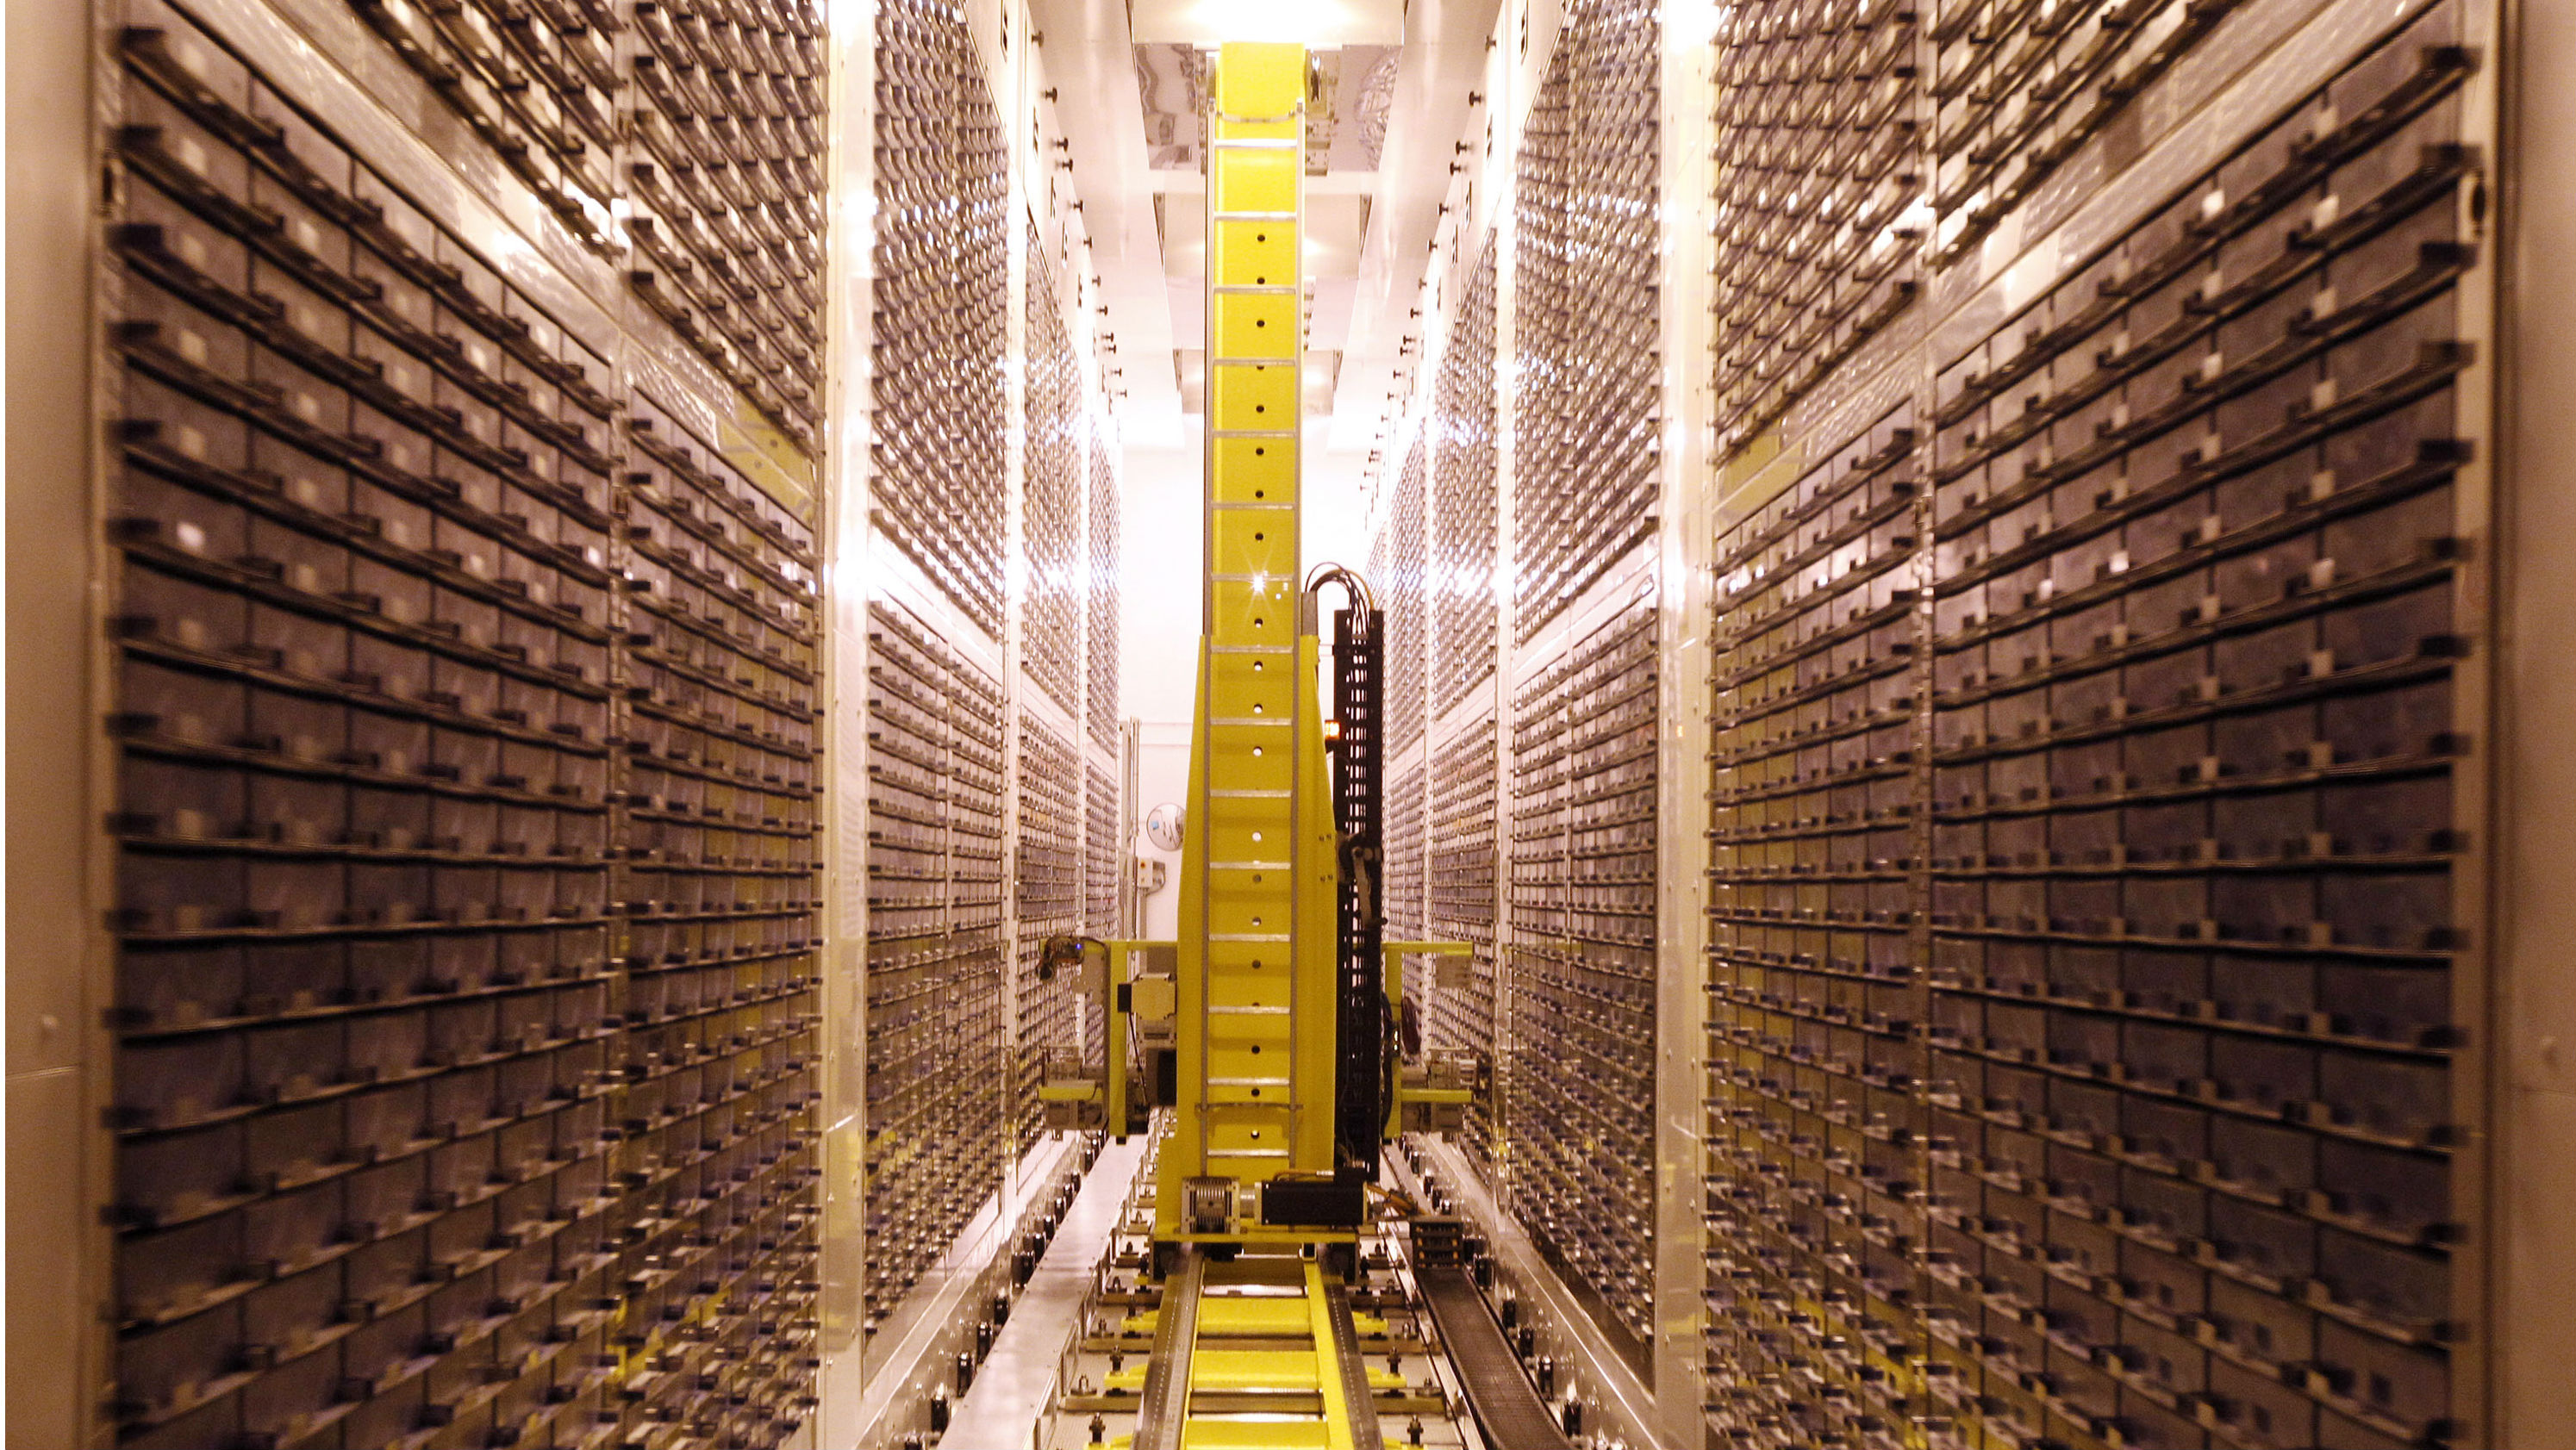 A storage robot deposits samples in the world's largest blood and urine sample freezer at Biobank, near Manchester, northern England, in this March 18, 2010 file picture. Francis Collins, who helped map the human genome, did not get around to having his own genes analyzed until last summer. And he was surprised by what he learned. Collins has a predisposition for type-2 diabetes, something he had never suspected. The lanky, former director of the National Human Genome Research Institute (NHGRI) discovered this through tests offered by Navigenics, 23andMe Picture taken March 18, 2010. To match Special Report SCIENCE/GENOME REUTERS/Phil Noble (BRITAIN - Tags: HEALTH SCI TECH)